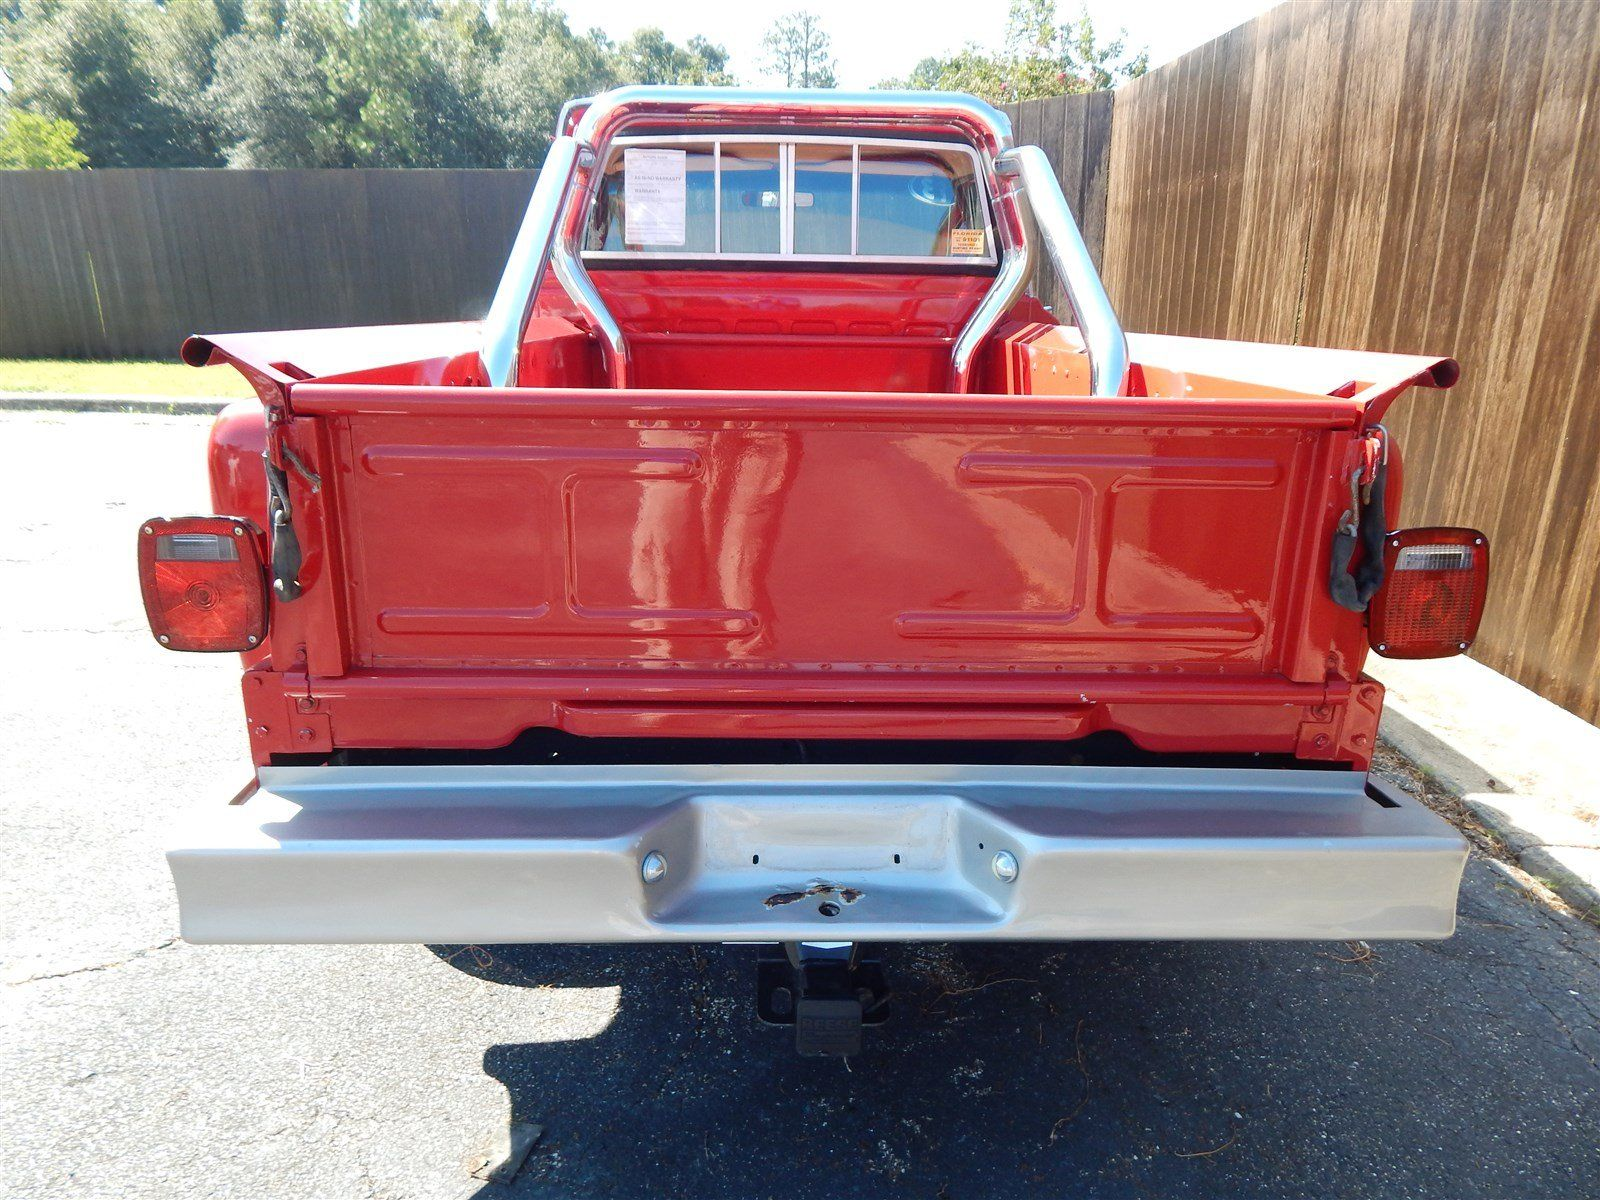 Cars for sale used 1983 jeep pickup in bainbridge ga 39817 cars for sale used 1983 jeep pickup in bainbridge ga 39817 details publicscrutiny Image collections